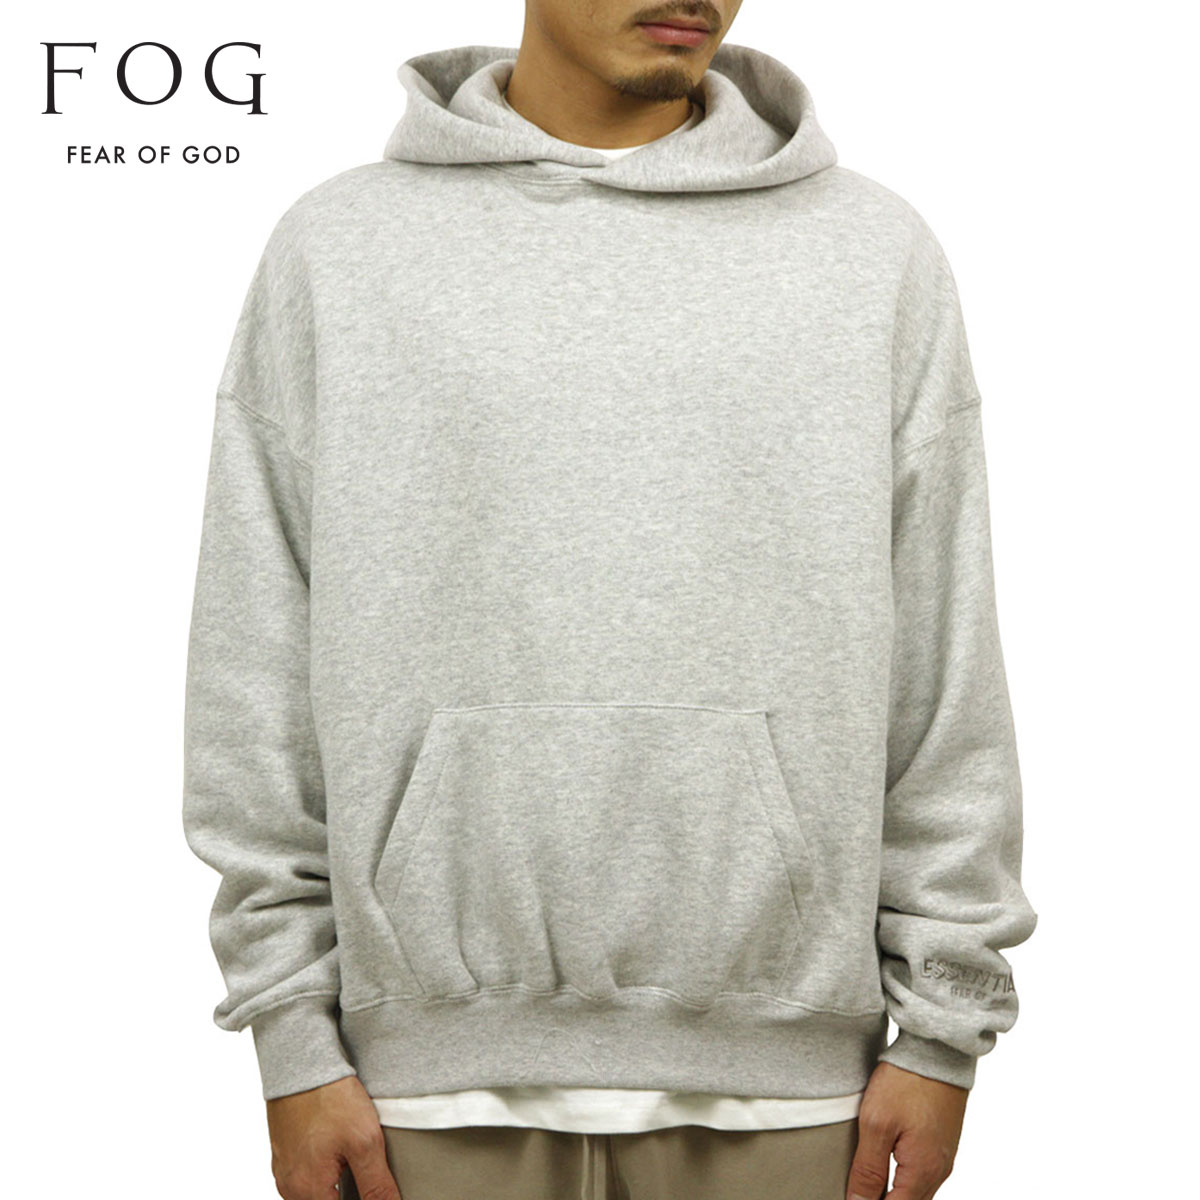 フィアオブゴッド パーカー メンズ 正規品 FEAR OF GOD プルオーバーパーカー FOG - FEAR OF GOD ESSENTIALS PULLOVER HOODIE HEATHER GREY AA5B B1C C1D D5E E02F